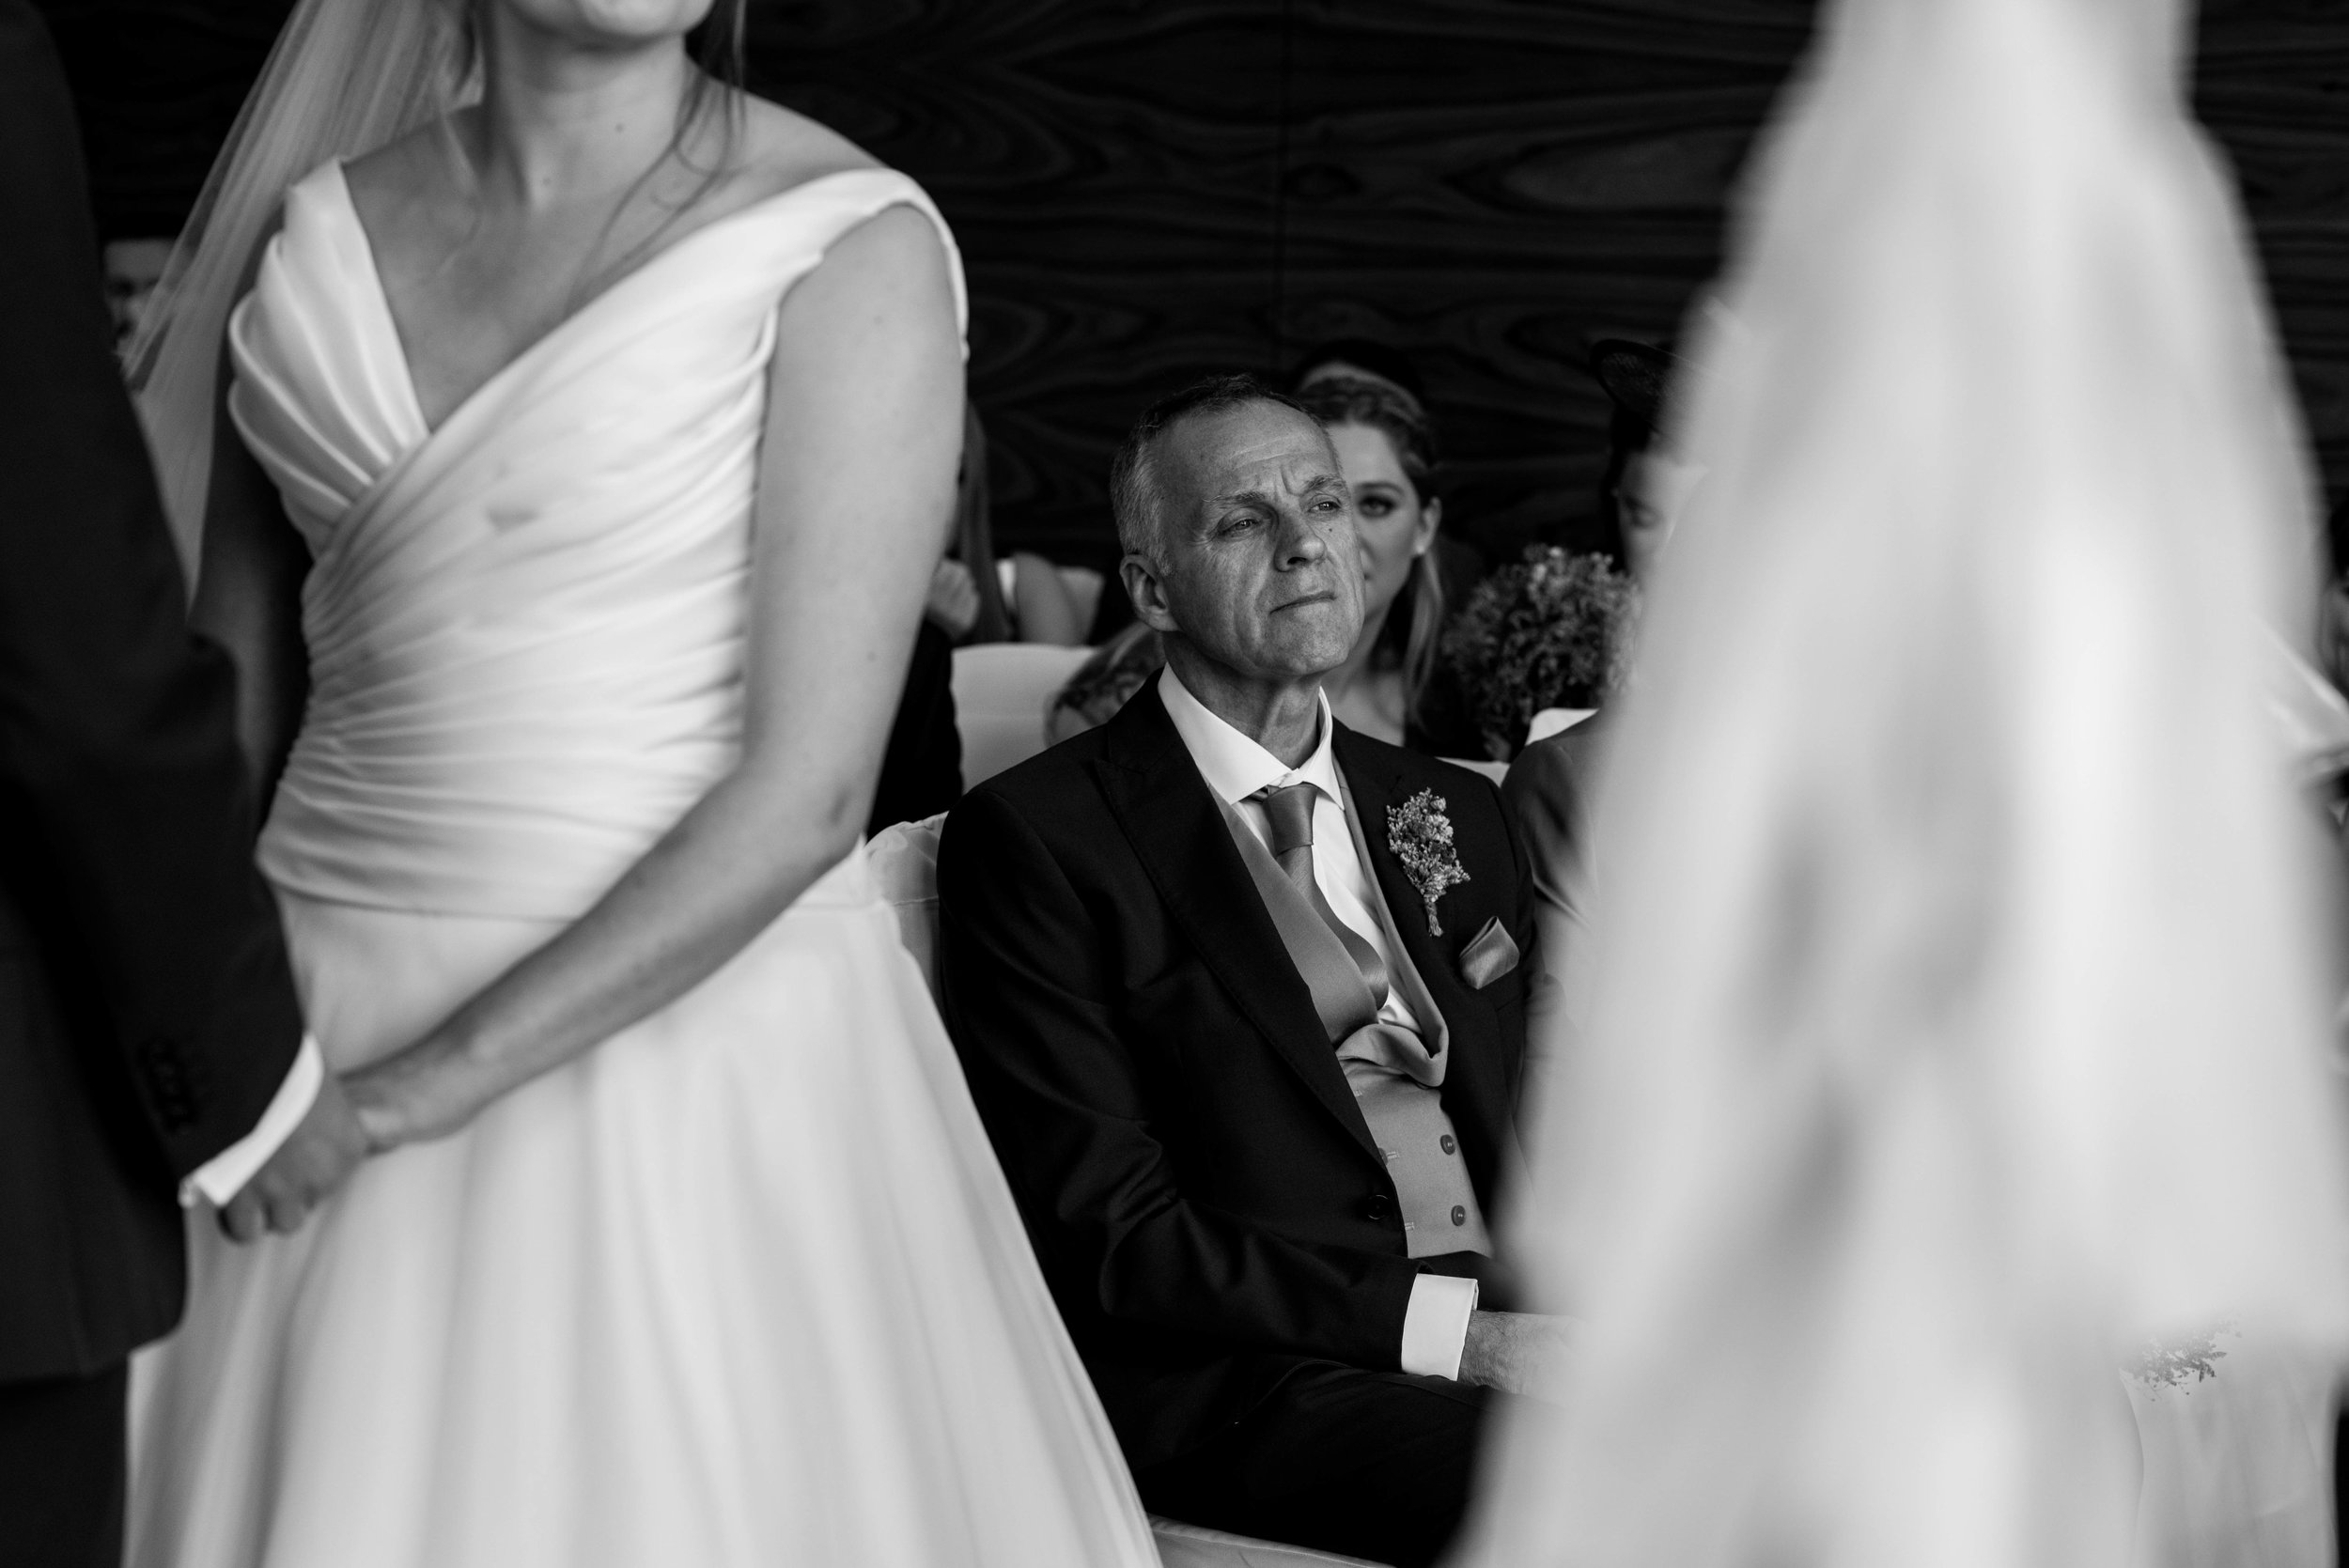 The brides father sits looking emotional during the wedding ceremony